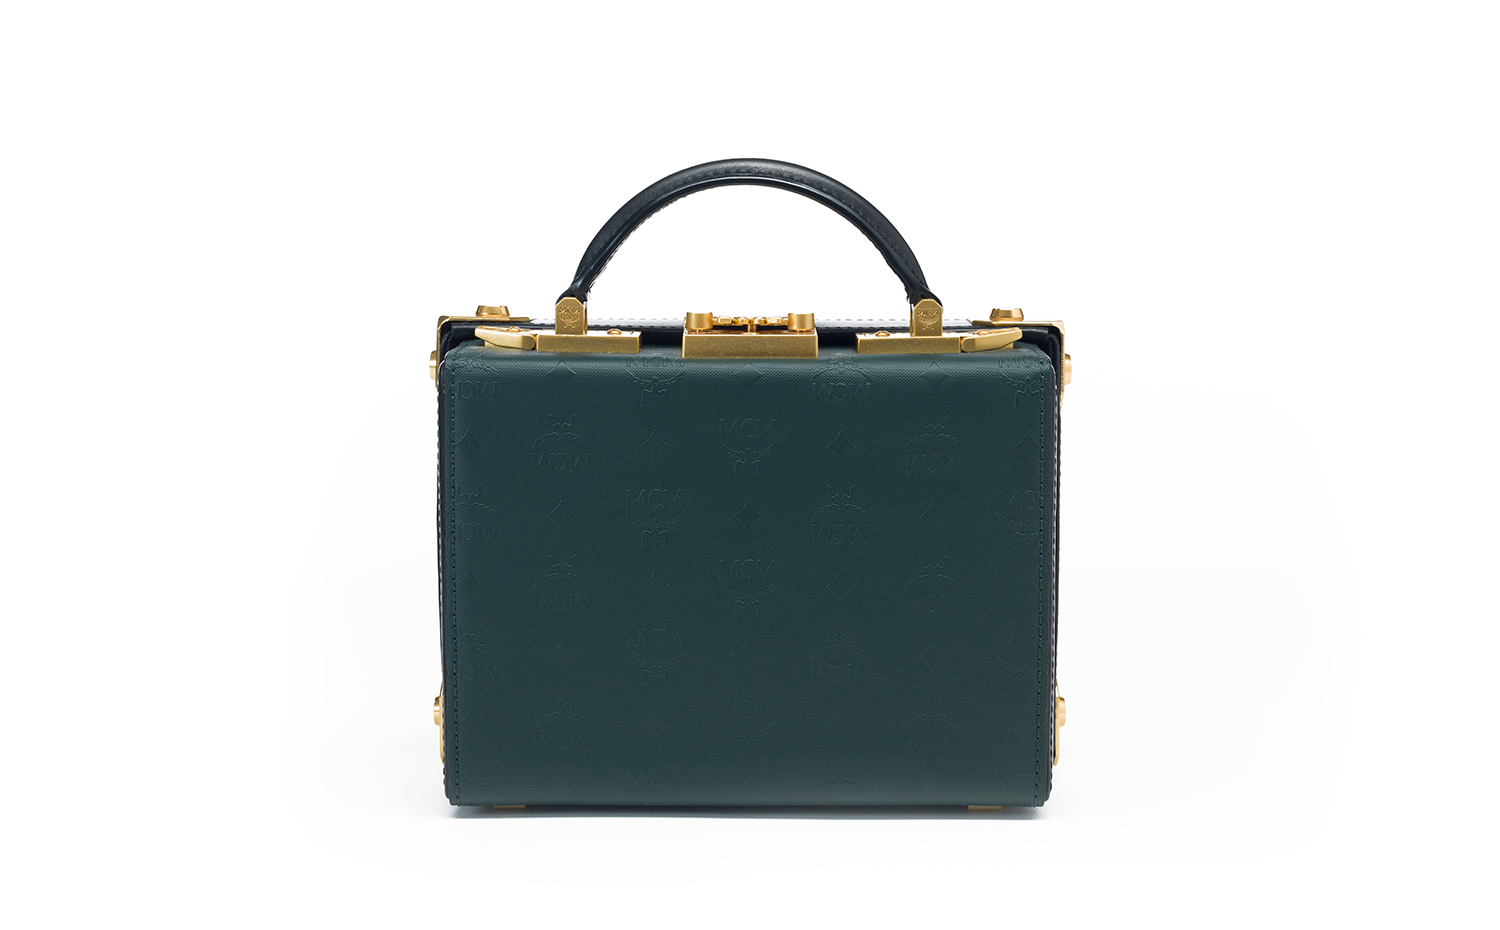 MCM Berlin Crossbody Bag - Green